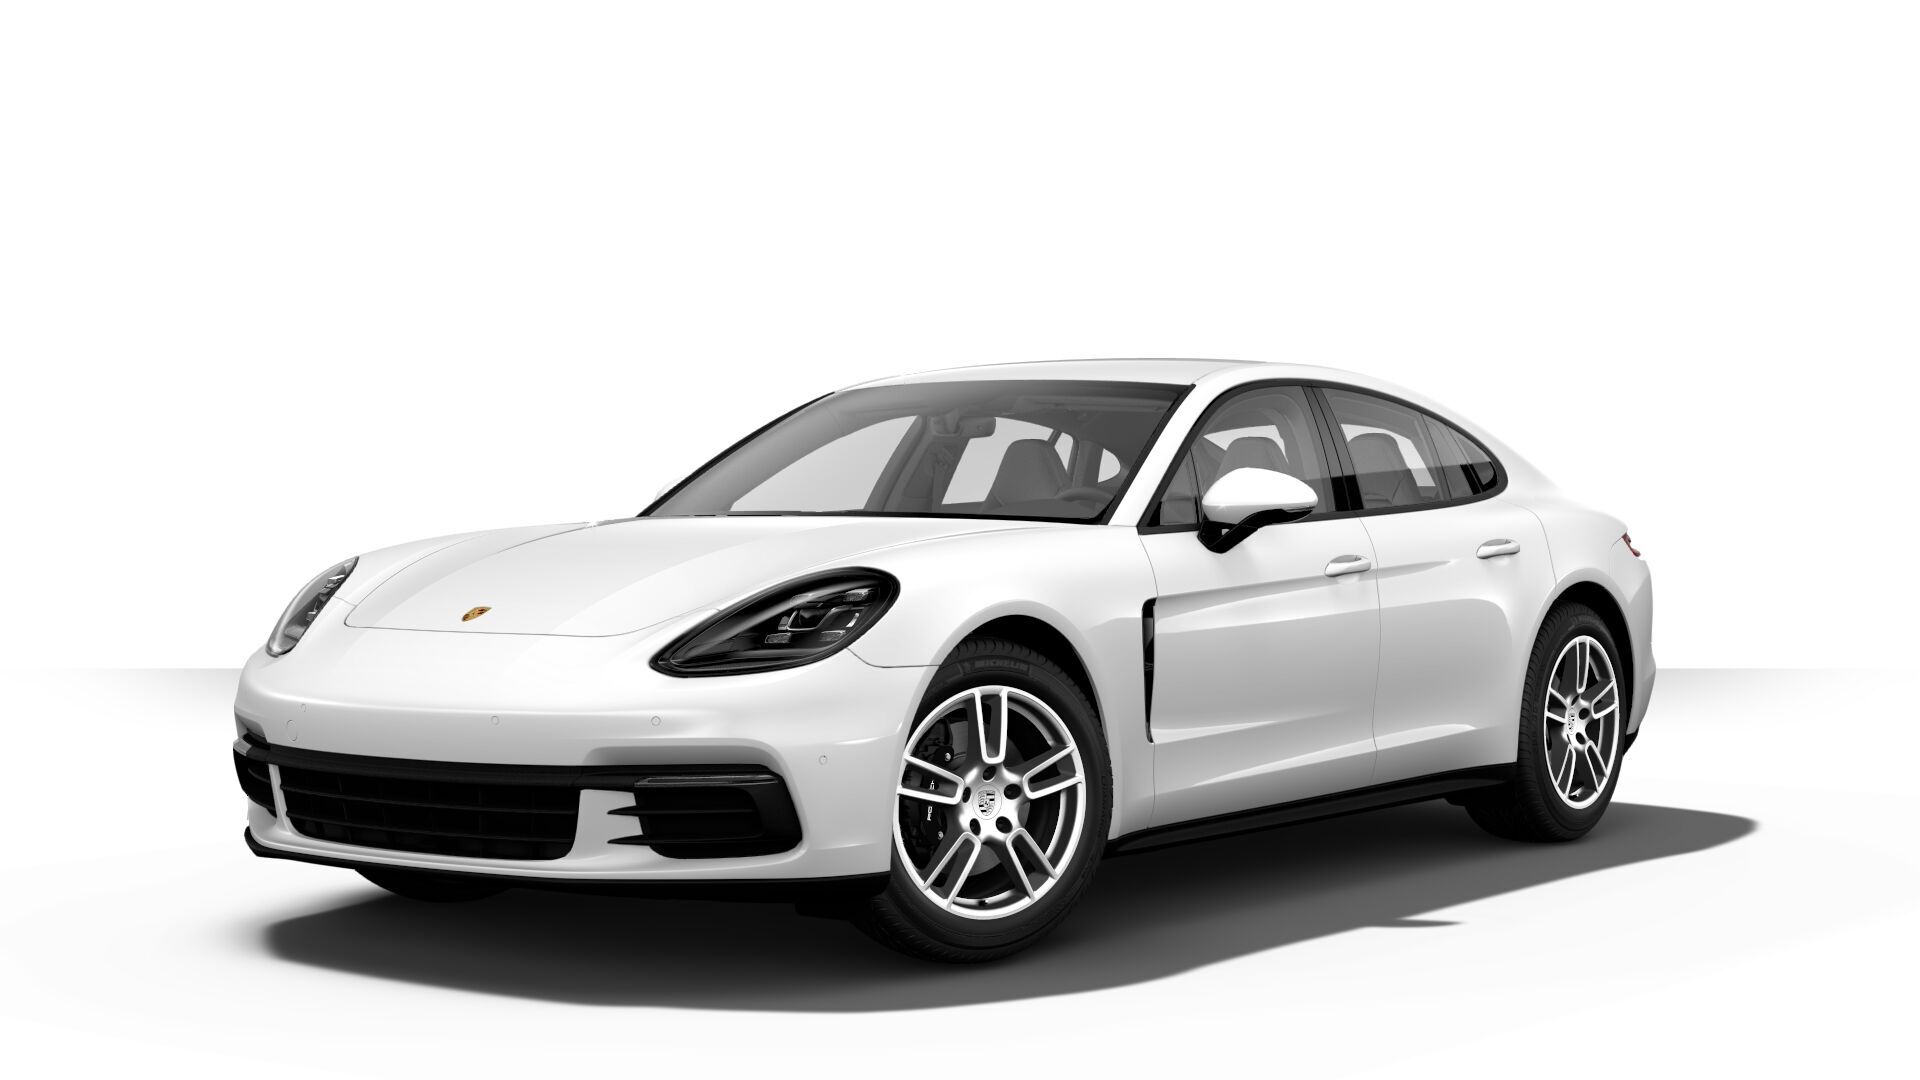 New 2020 Porsche Panamera | Porsche Exchange